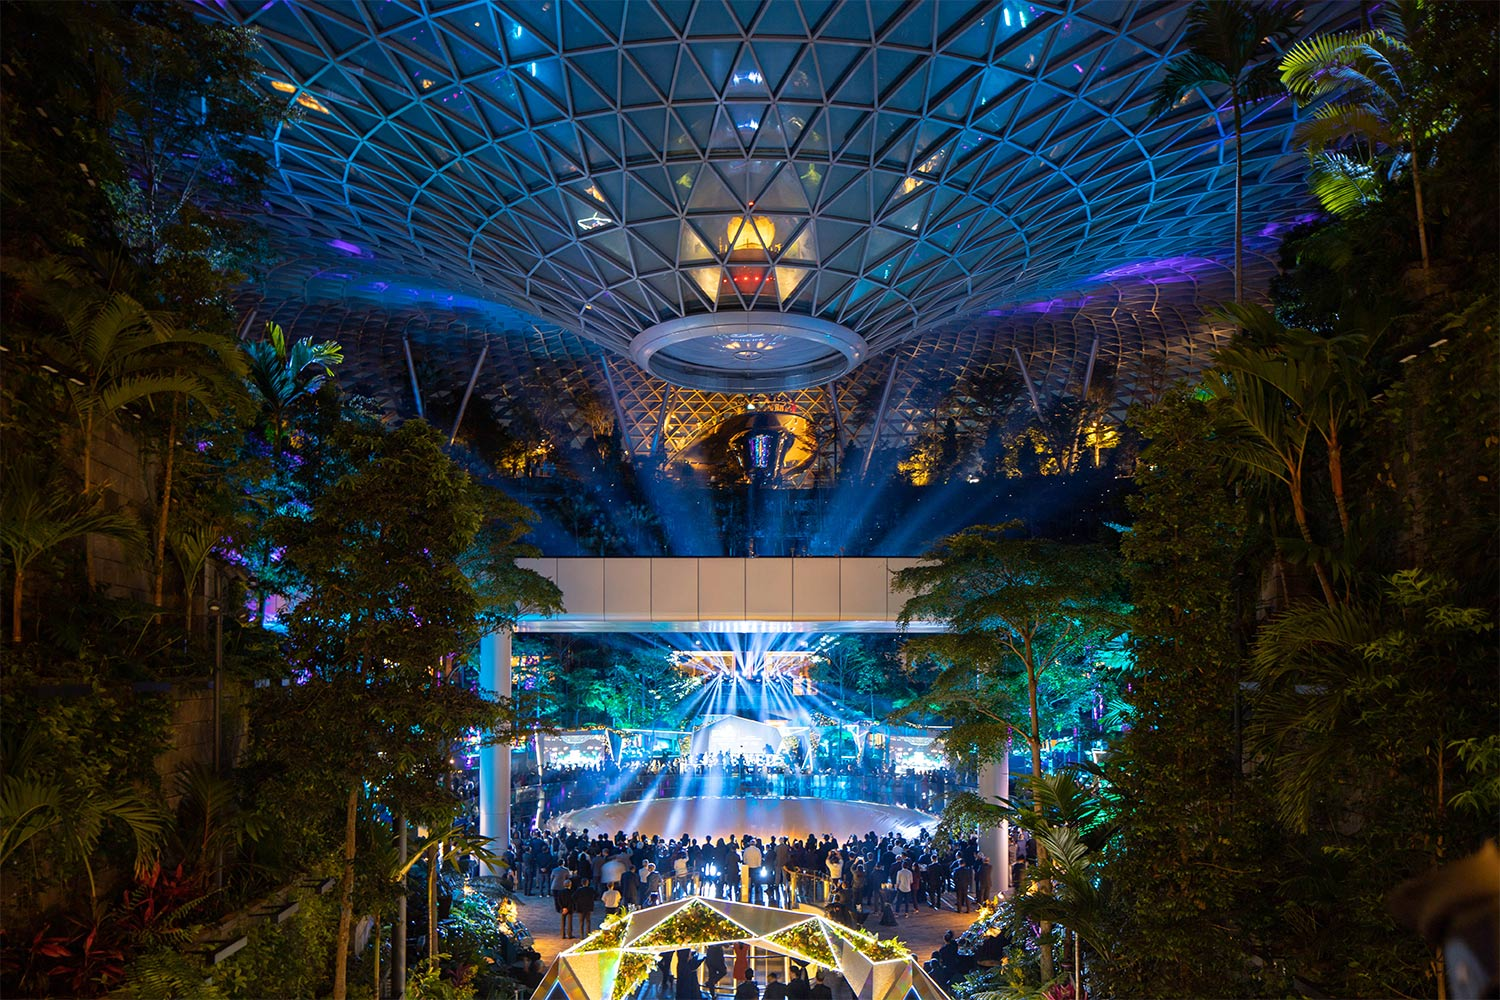 Colourful lighting scheme illuminating Jewel Changi Airport at night